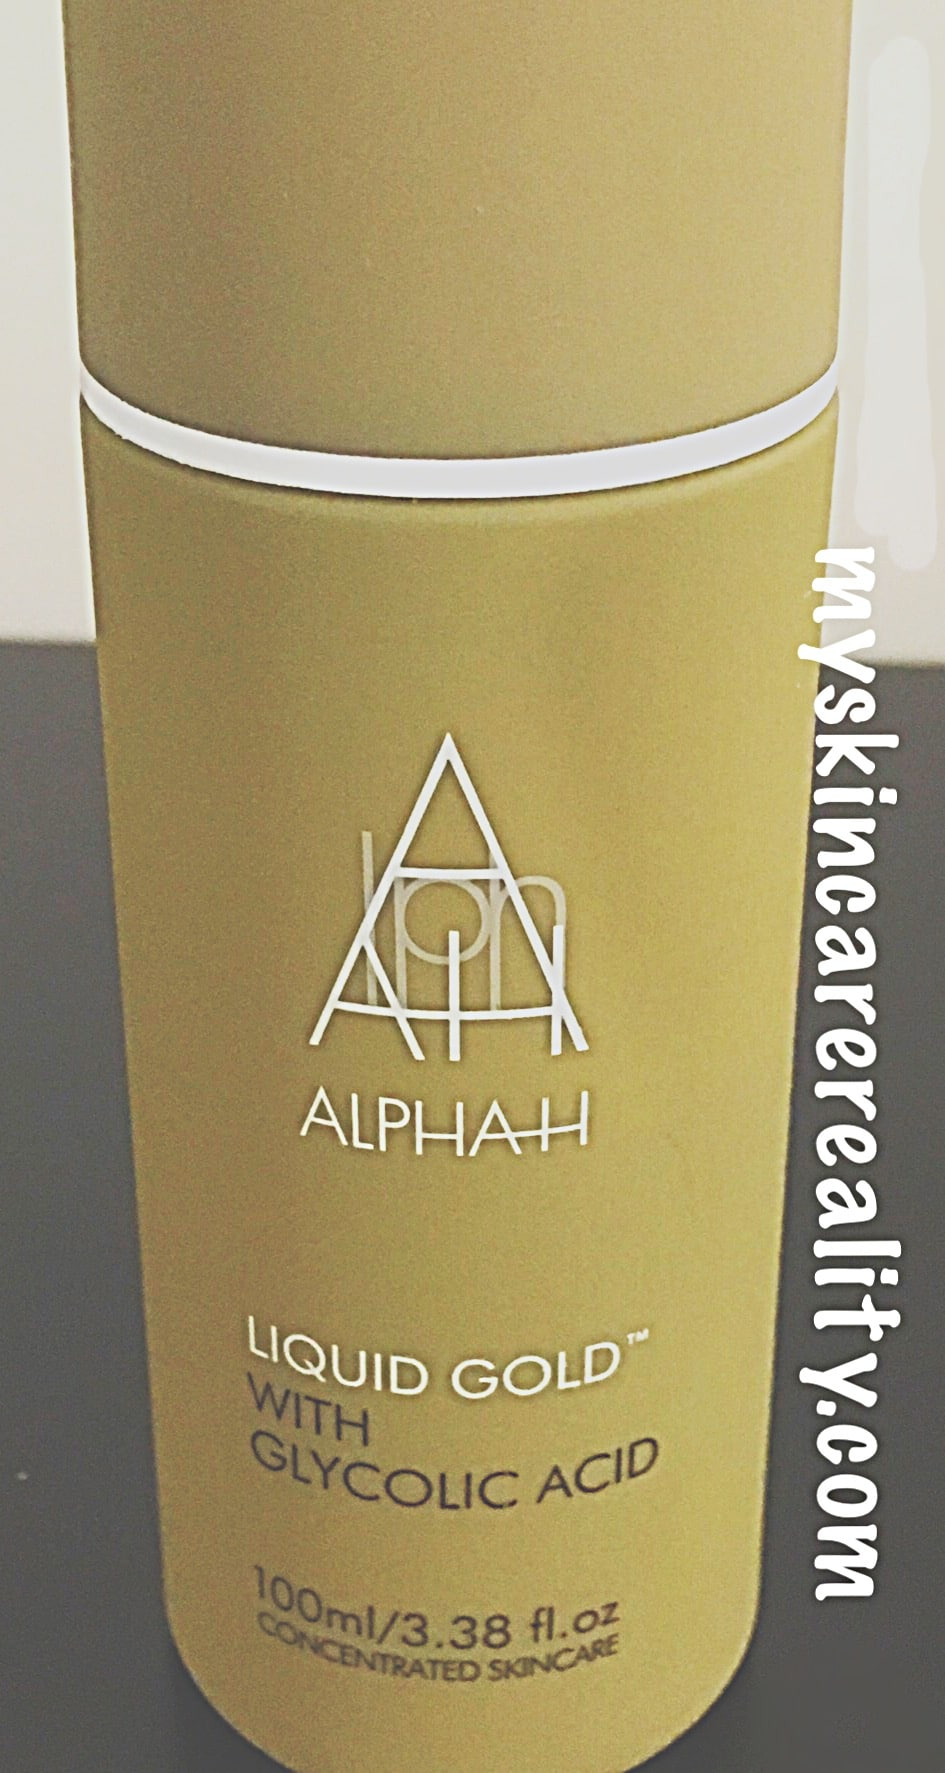 Alpha-H Liquid Gold Review | Skincare Reviews